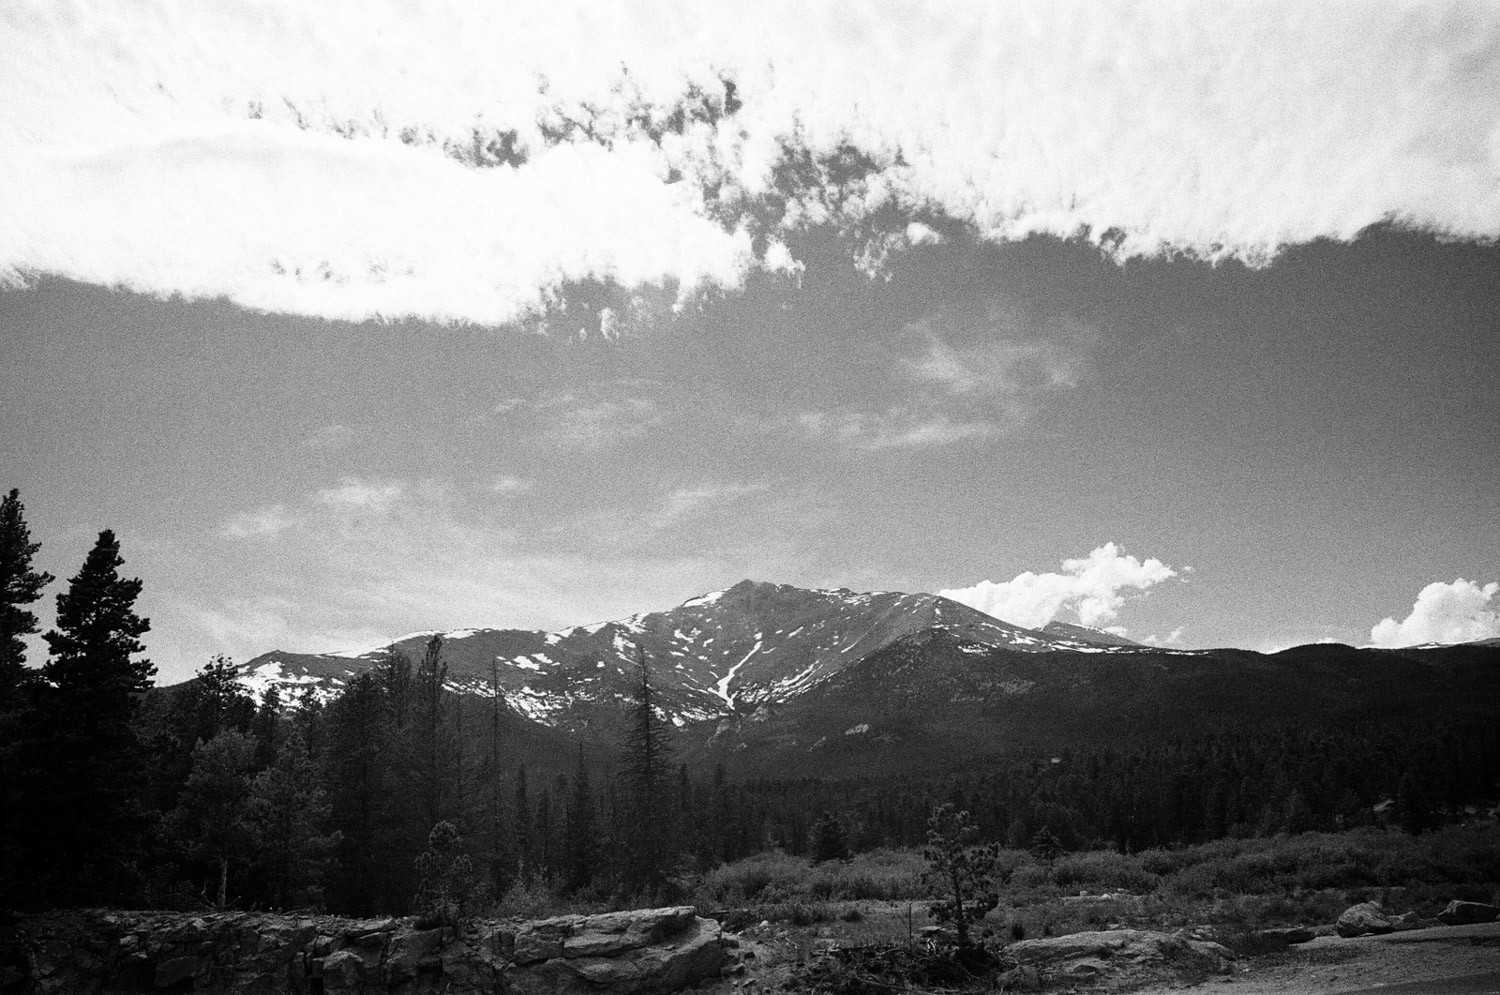 Figure 4 - Mt Meeker, ILFORD SFX 200